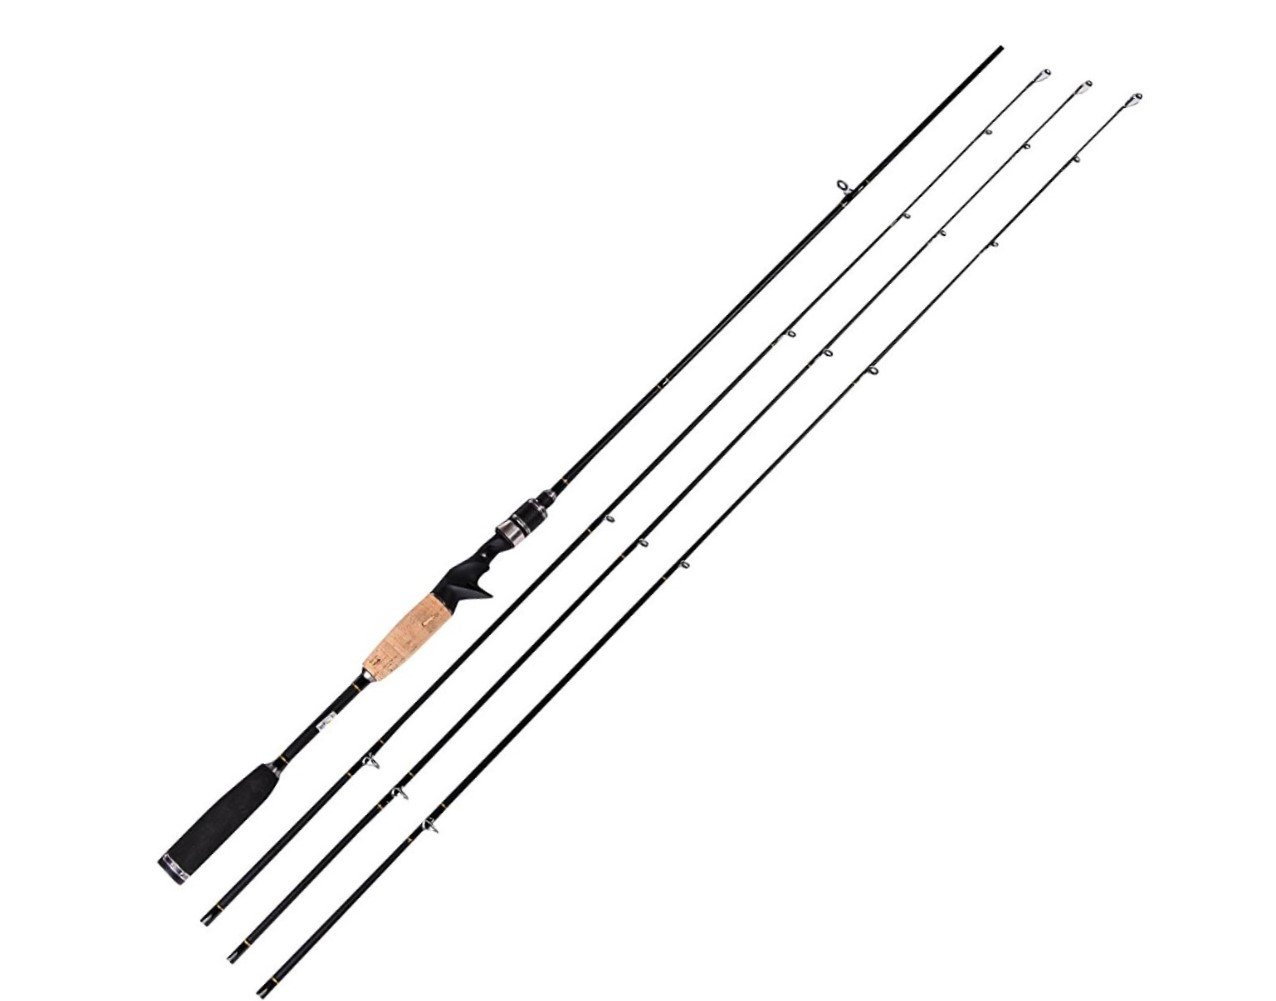 Entsport E Series – Rattlesnake 2-Piece 7-Feet Casting Rod with 3 Top Pieces Graphite Baitcasting Fishing Rod Portable Baitcast Rod Baitcaster Medium Heavy, Medium and Medium Light